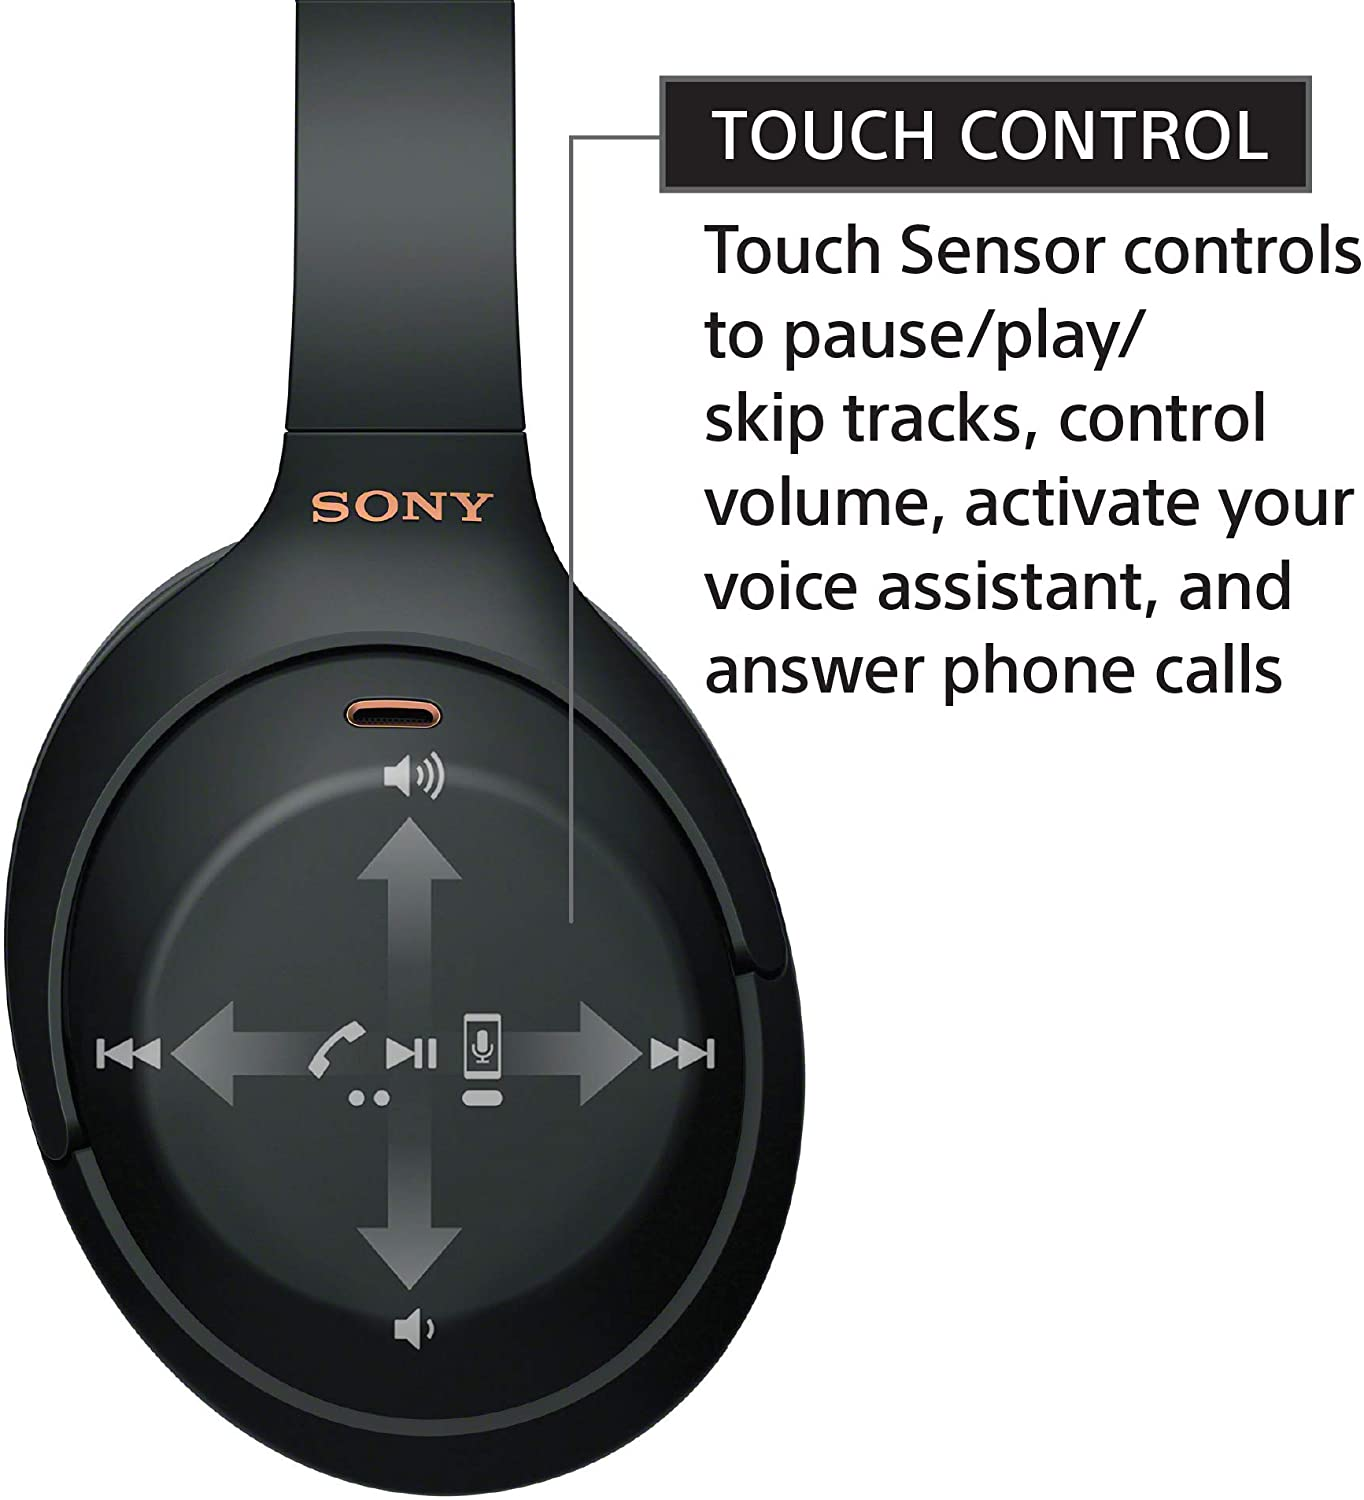 Sony WH-1000XM4 Wireless Noise Cancelling Overhead Headphones with Mic for Phone-Call and Google/Alexa Voice Control, Black